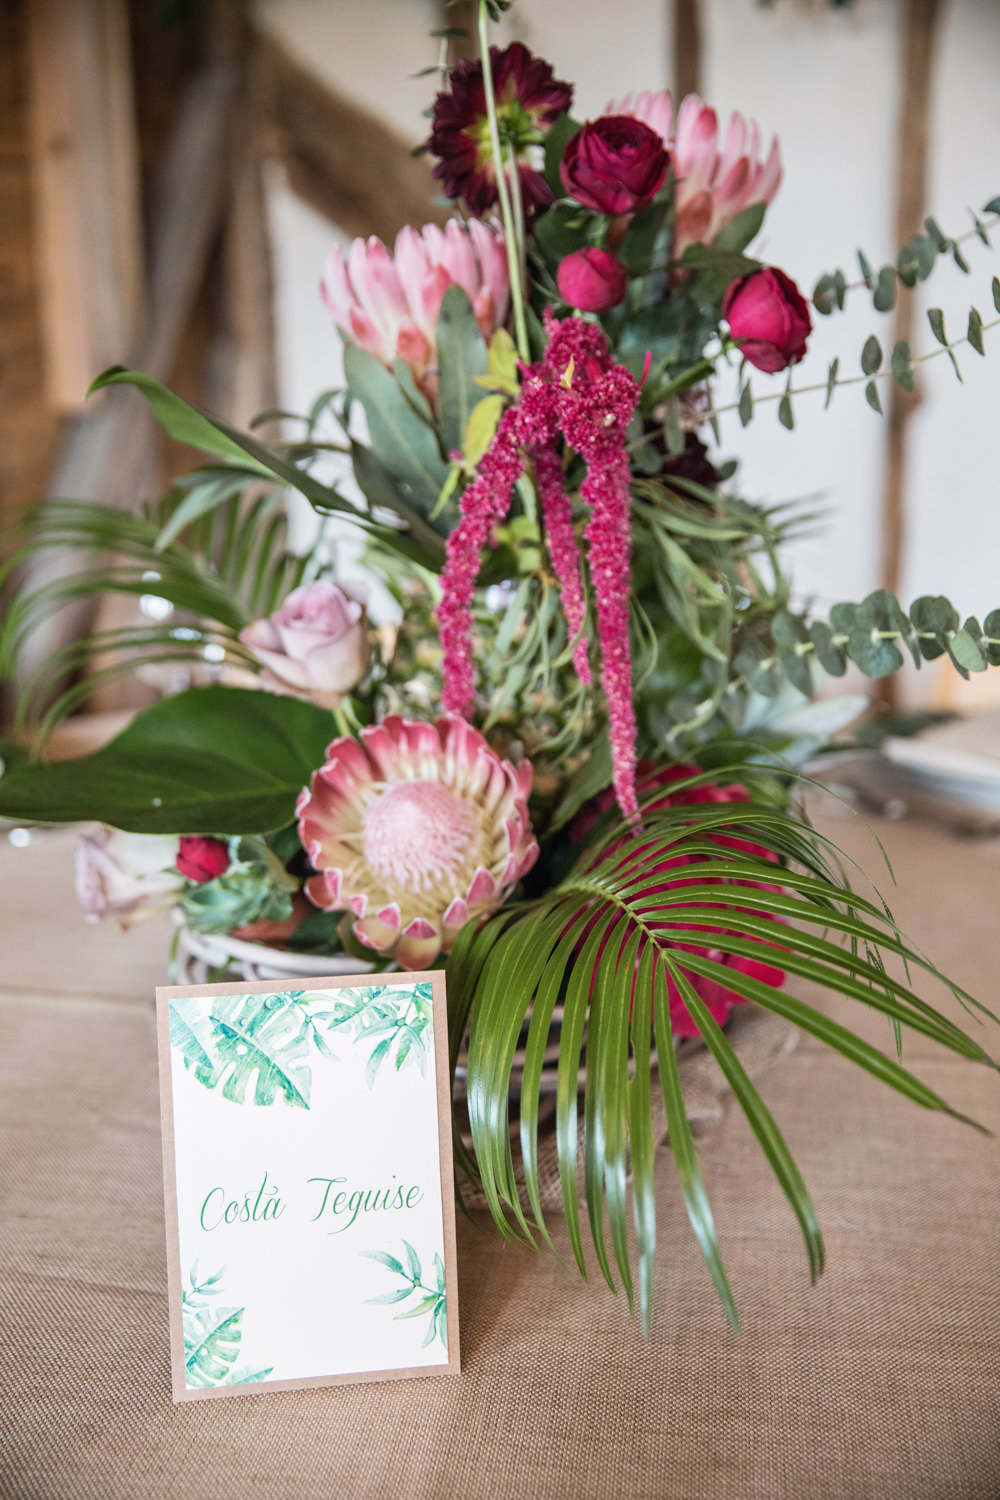 Flowers Table Name Tropical Centrepiece Protea Rose House Meadow Wedding Kerry Ann Duffy Photography